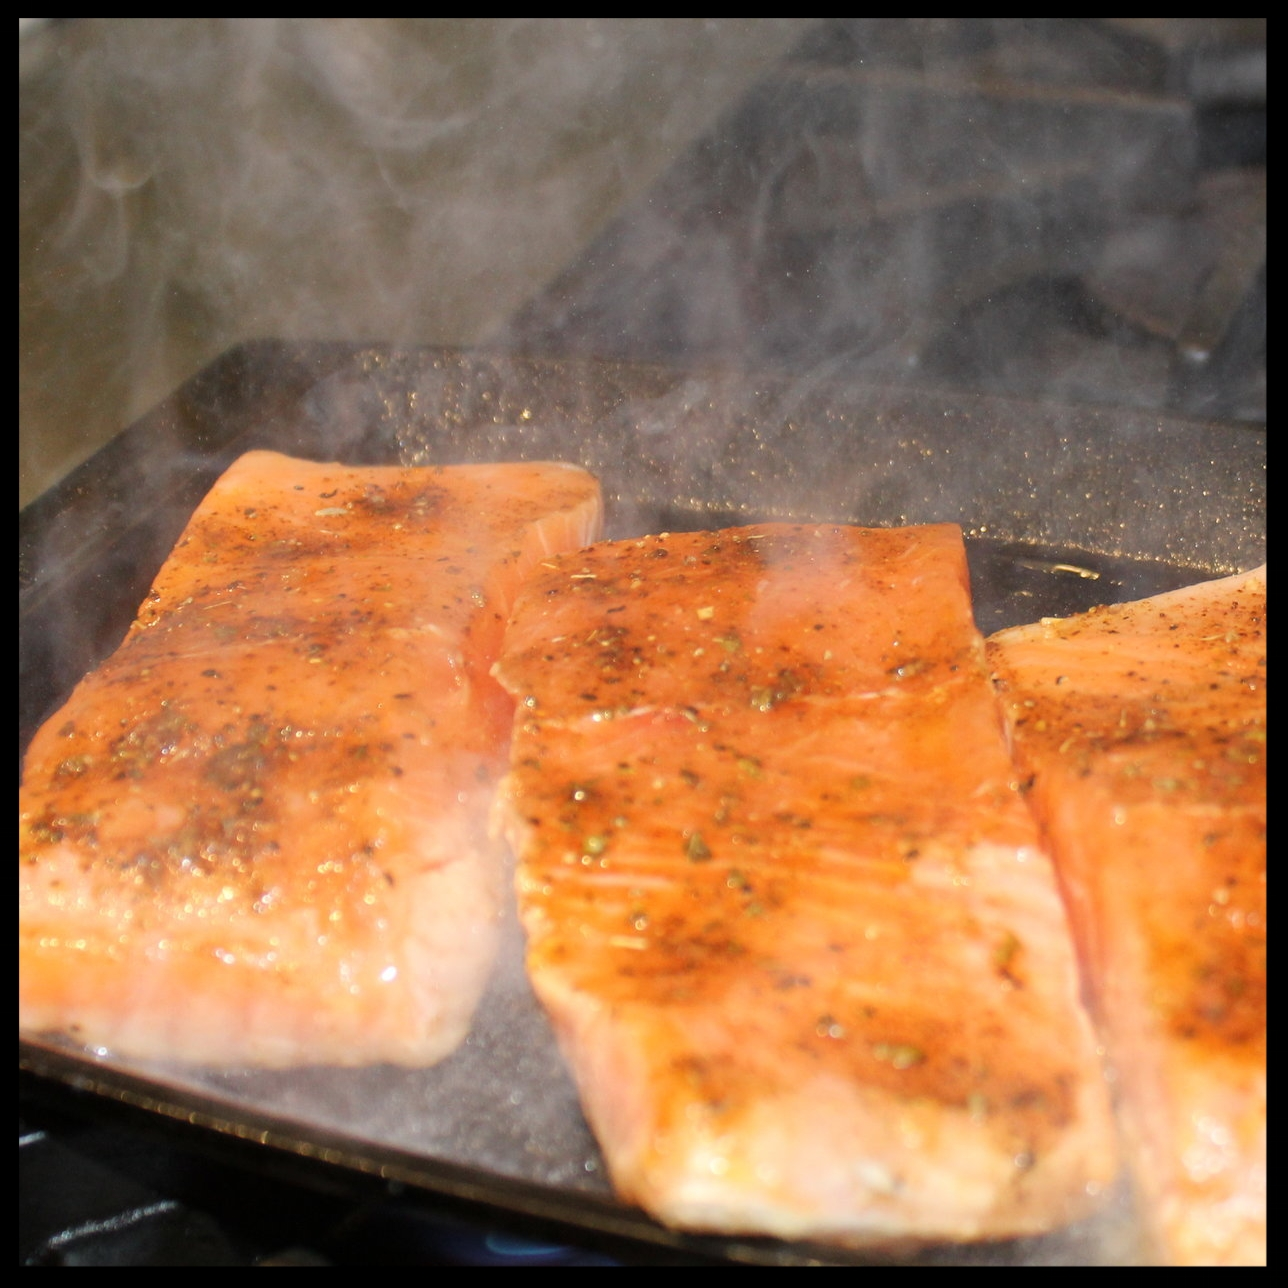 25. Turn your oven up to broil.  26. In to a VERY HOT heavy pan (I use cast iron), put your salmon skin side down and sear for about 3 minutes.